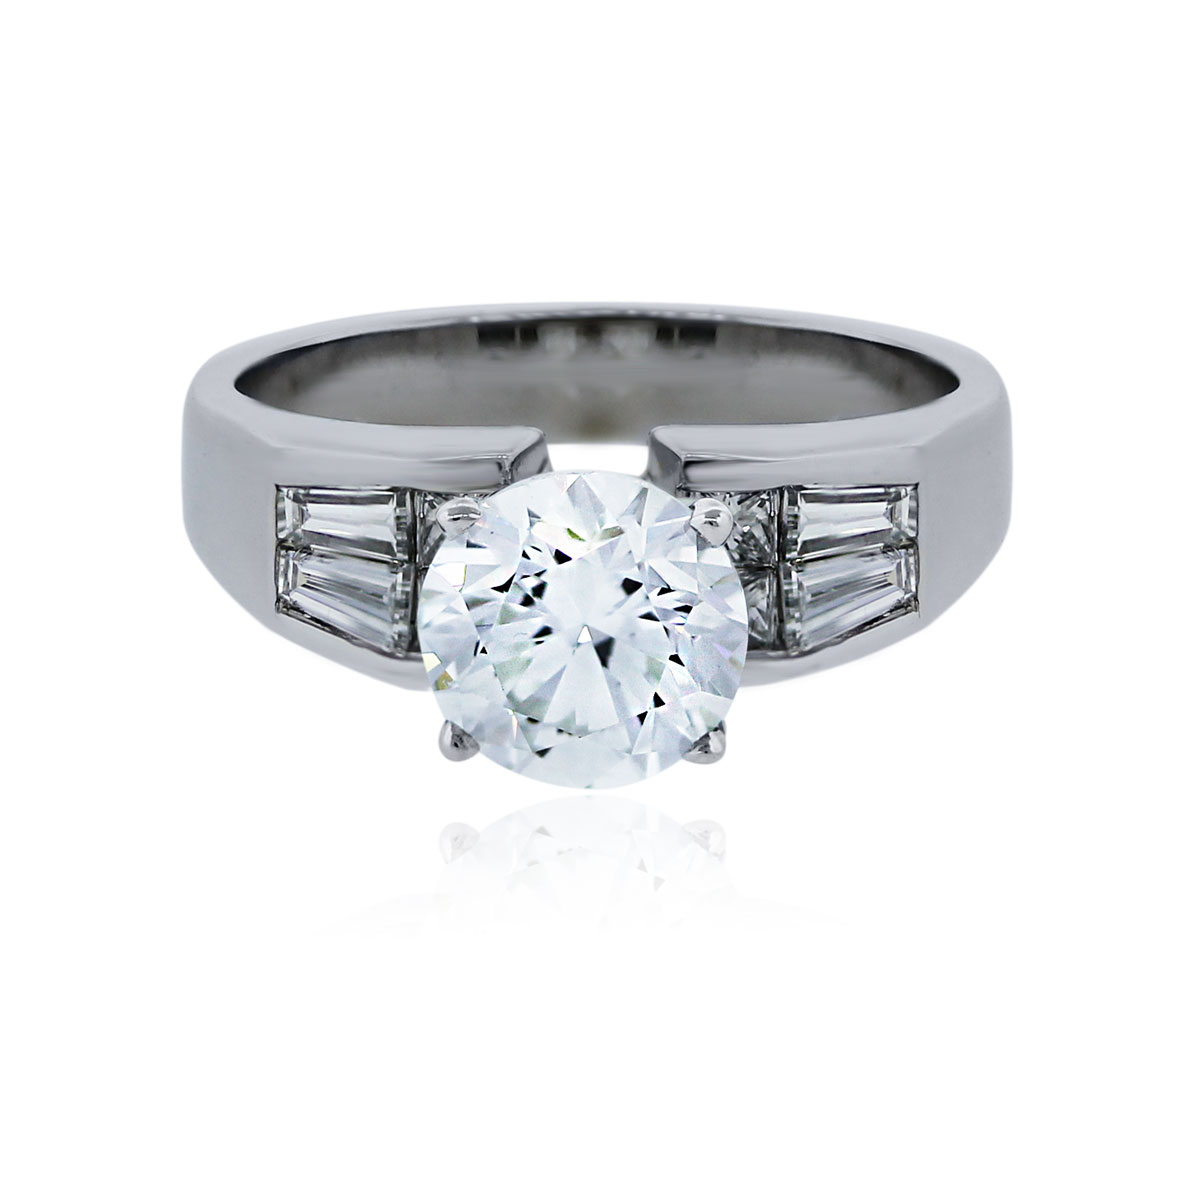 You are viewing this White Gold 1.92ct Round Brilliant Diamond Engagement Ring!